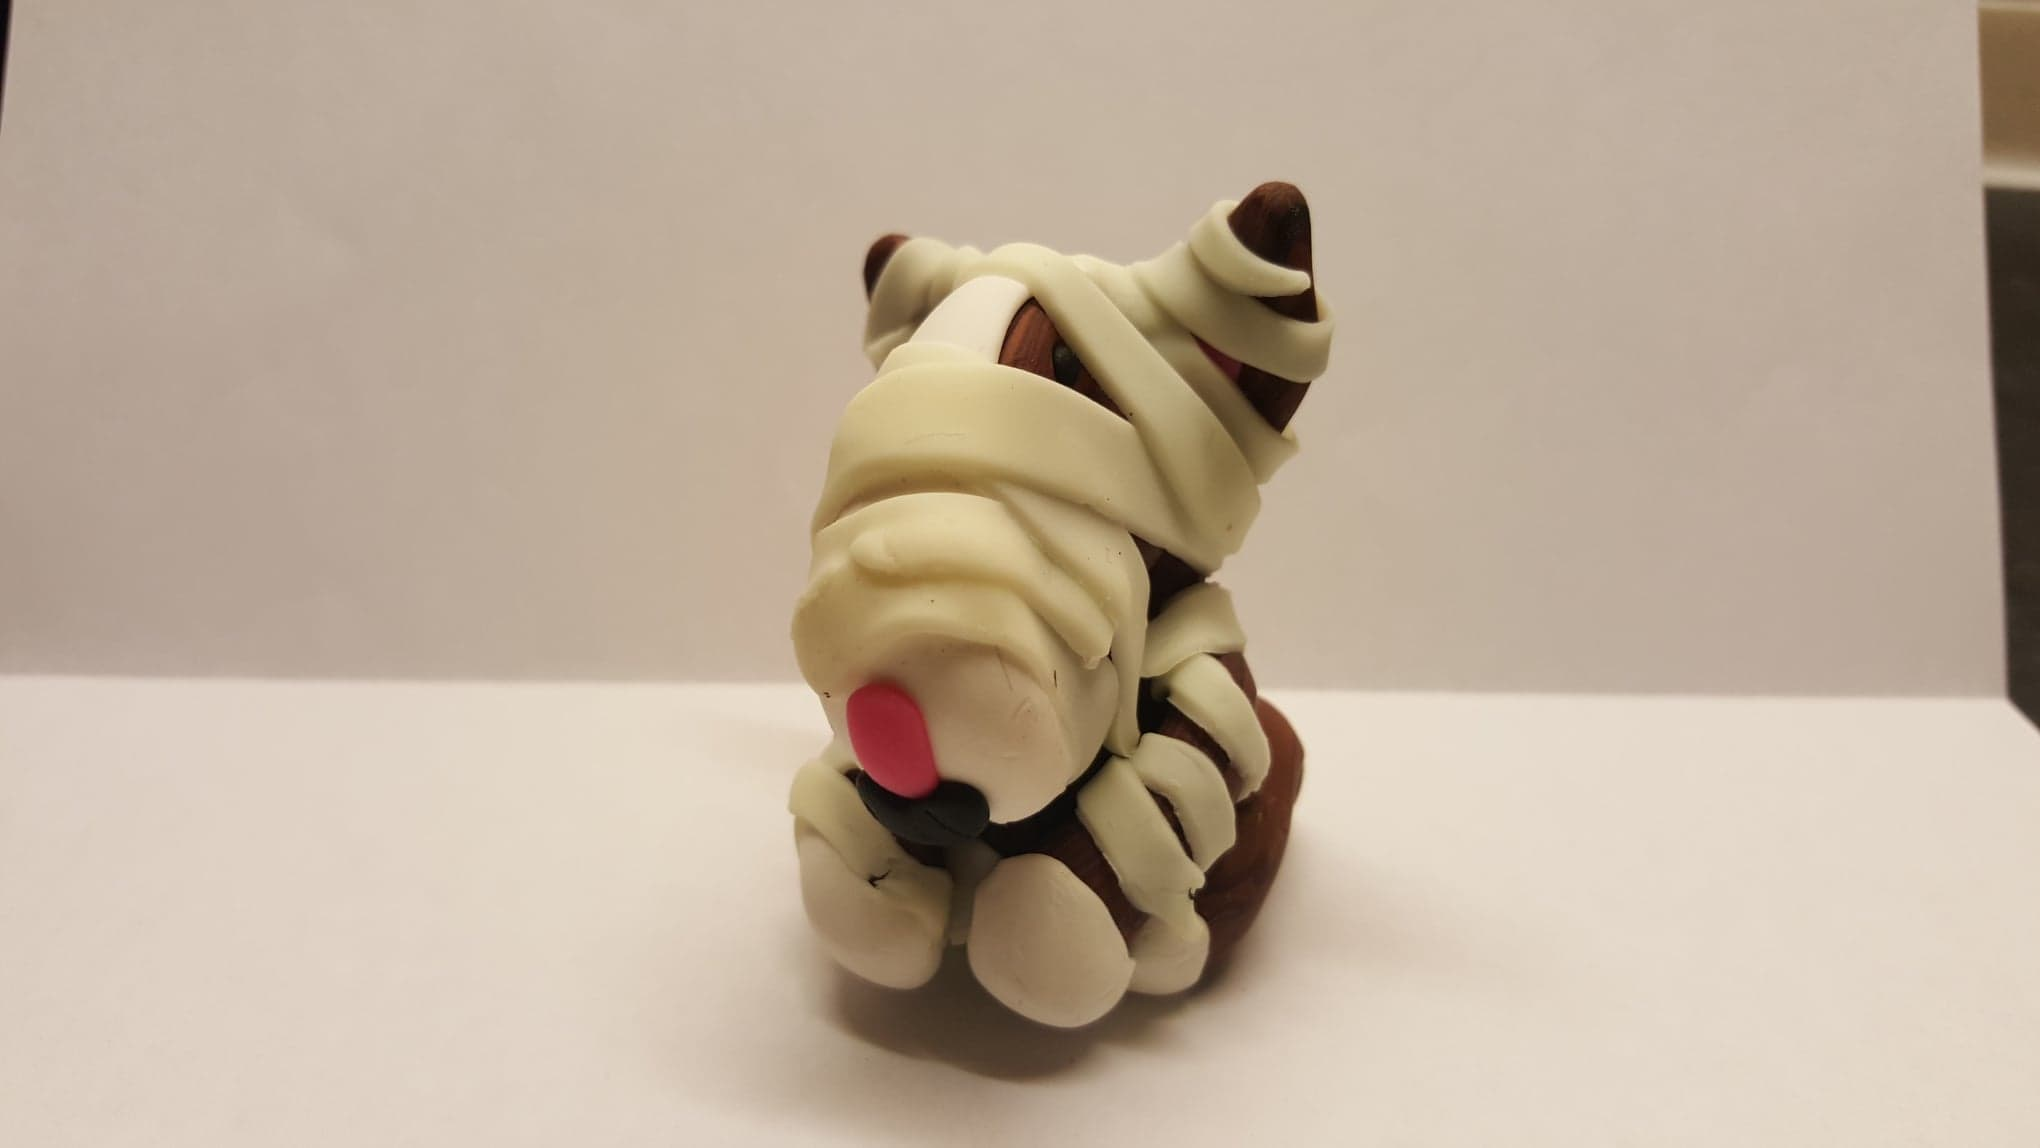 An english bull terrier figure with green glow in the dark bandages under normal light wrapped in the style of a mummy